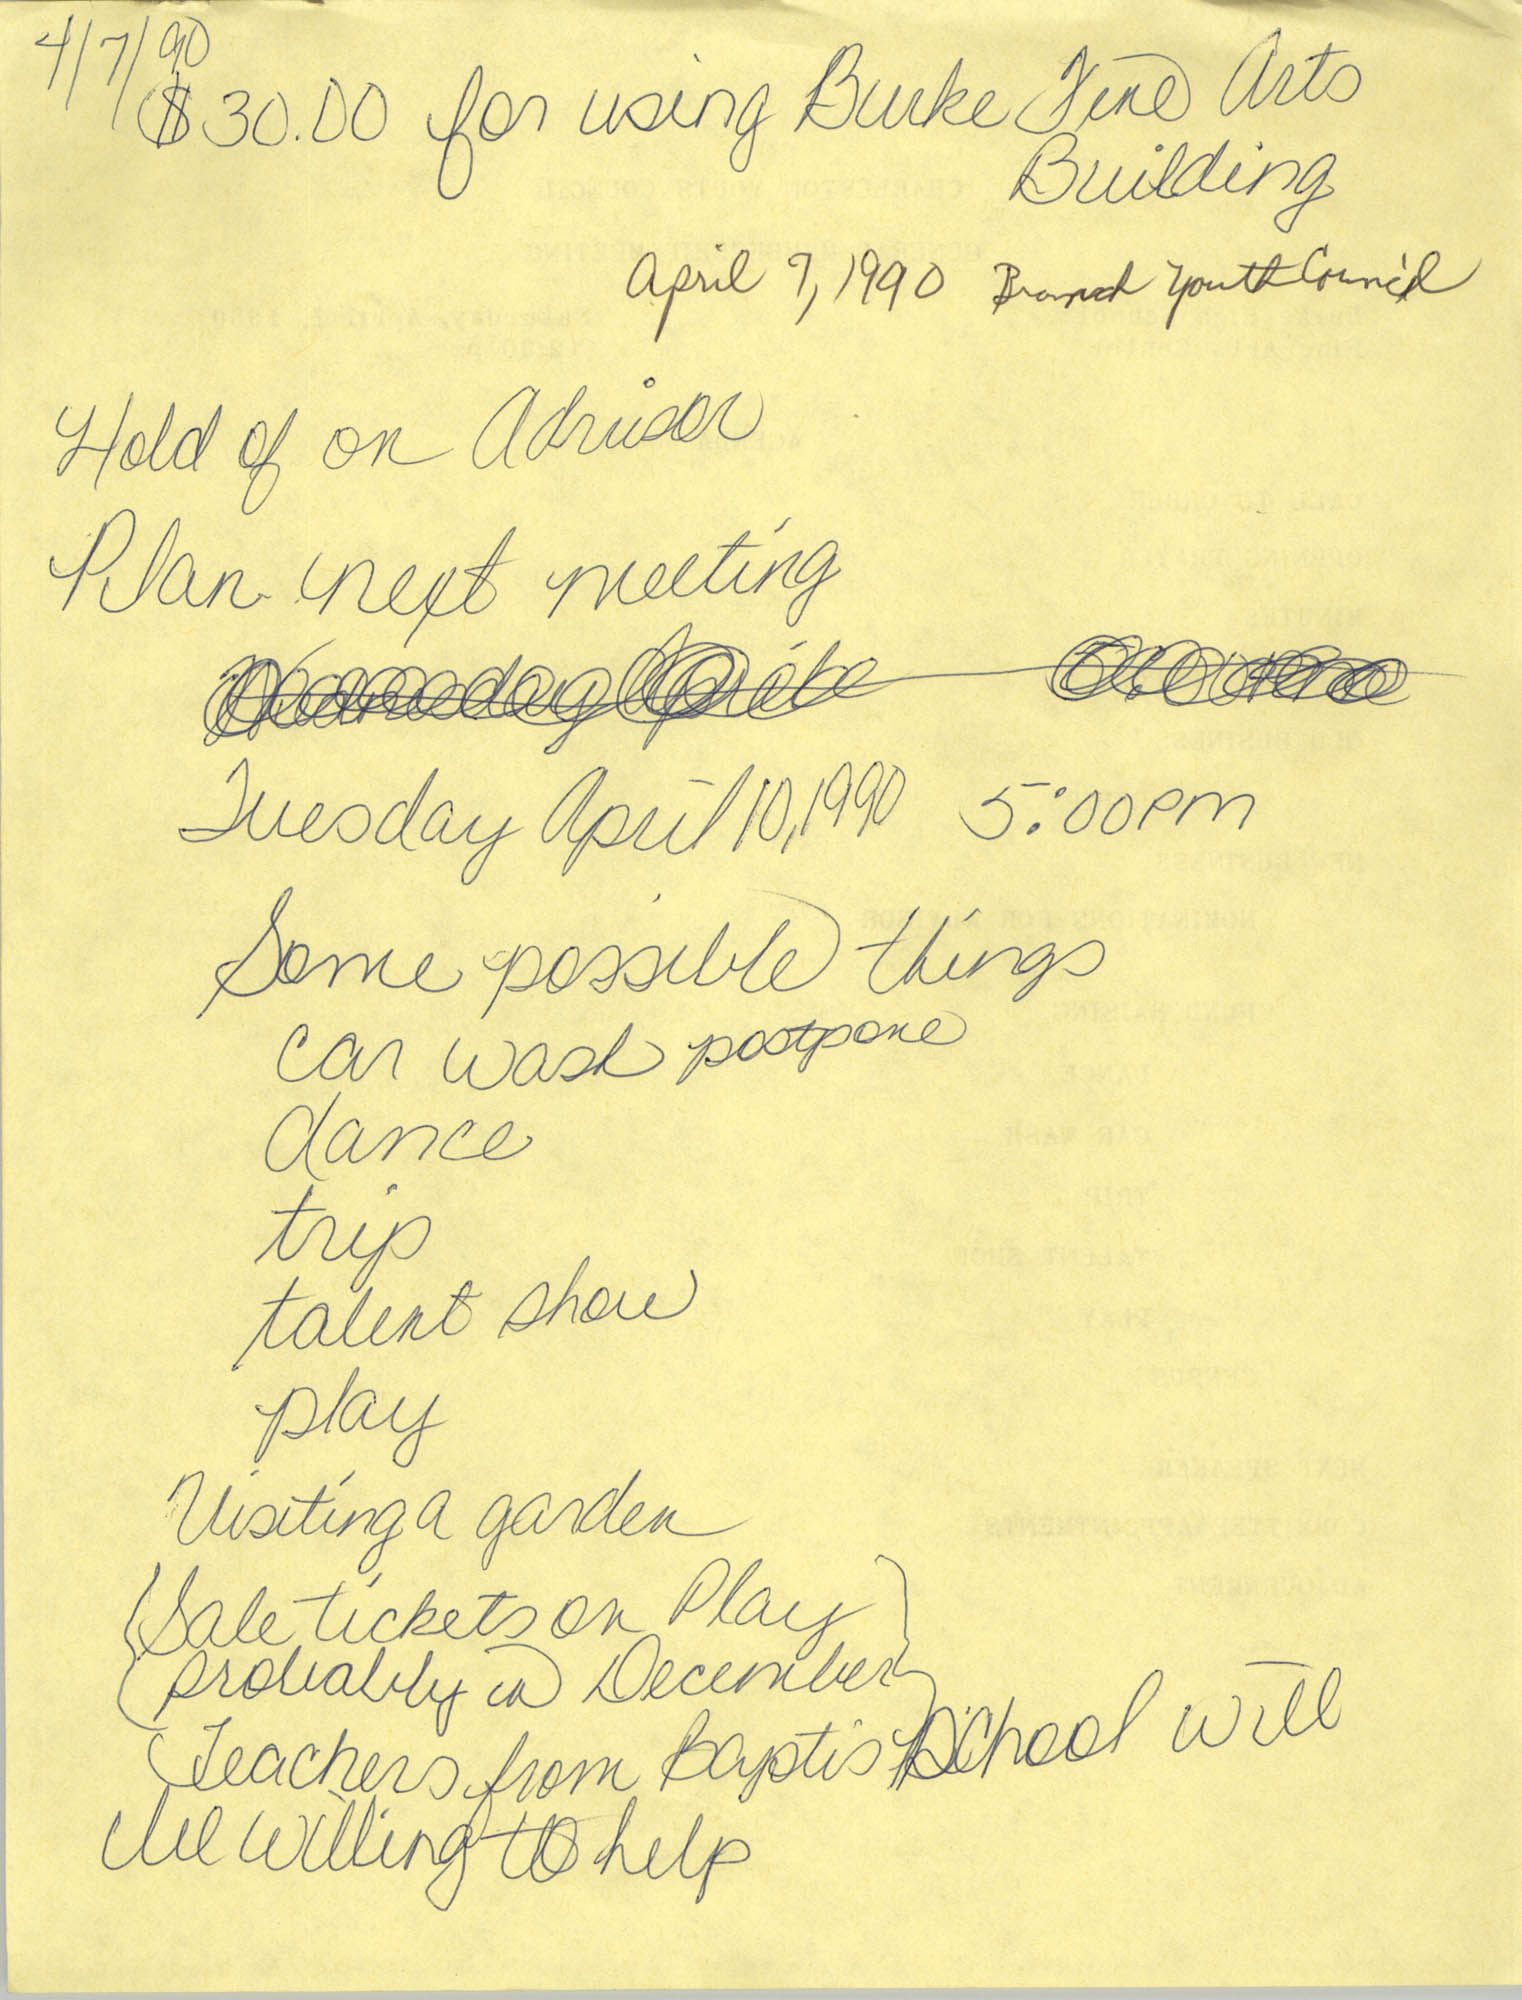 Handwritten Minutes, General Membership Meeting, Charleston Youth Council, April 7, 1990